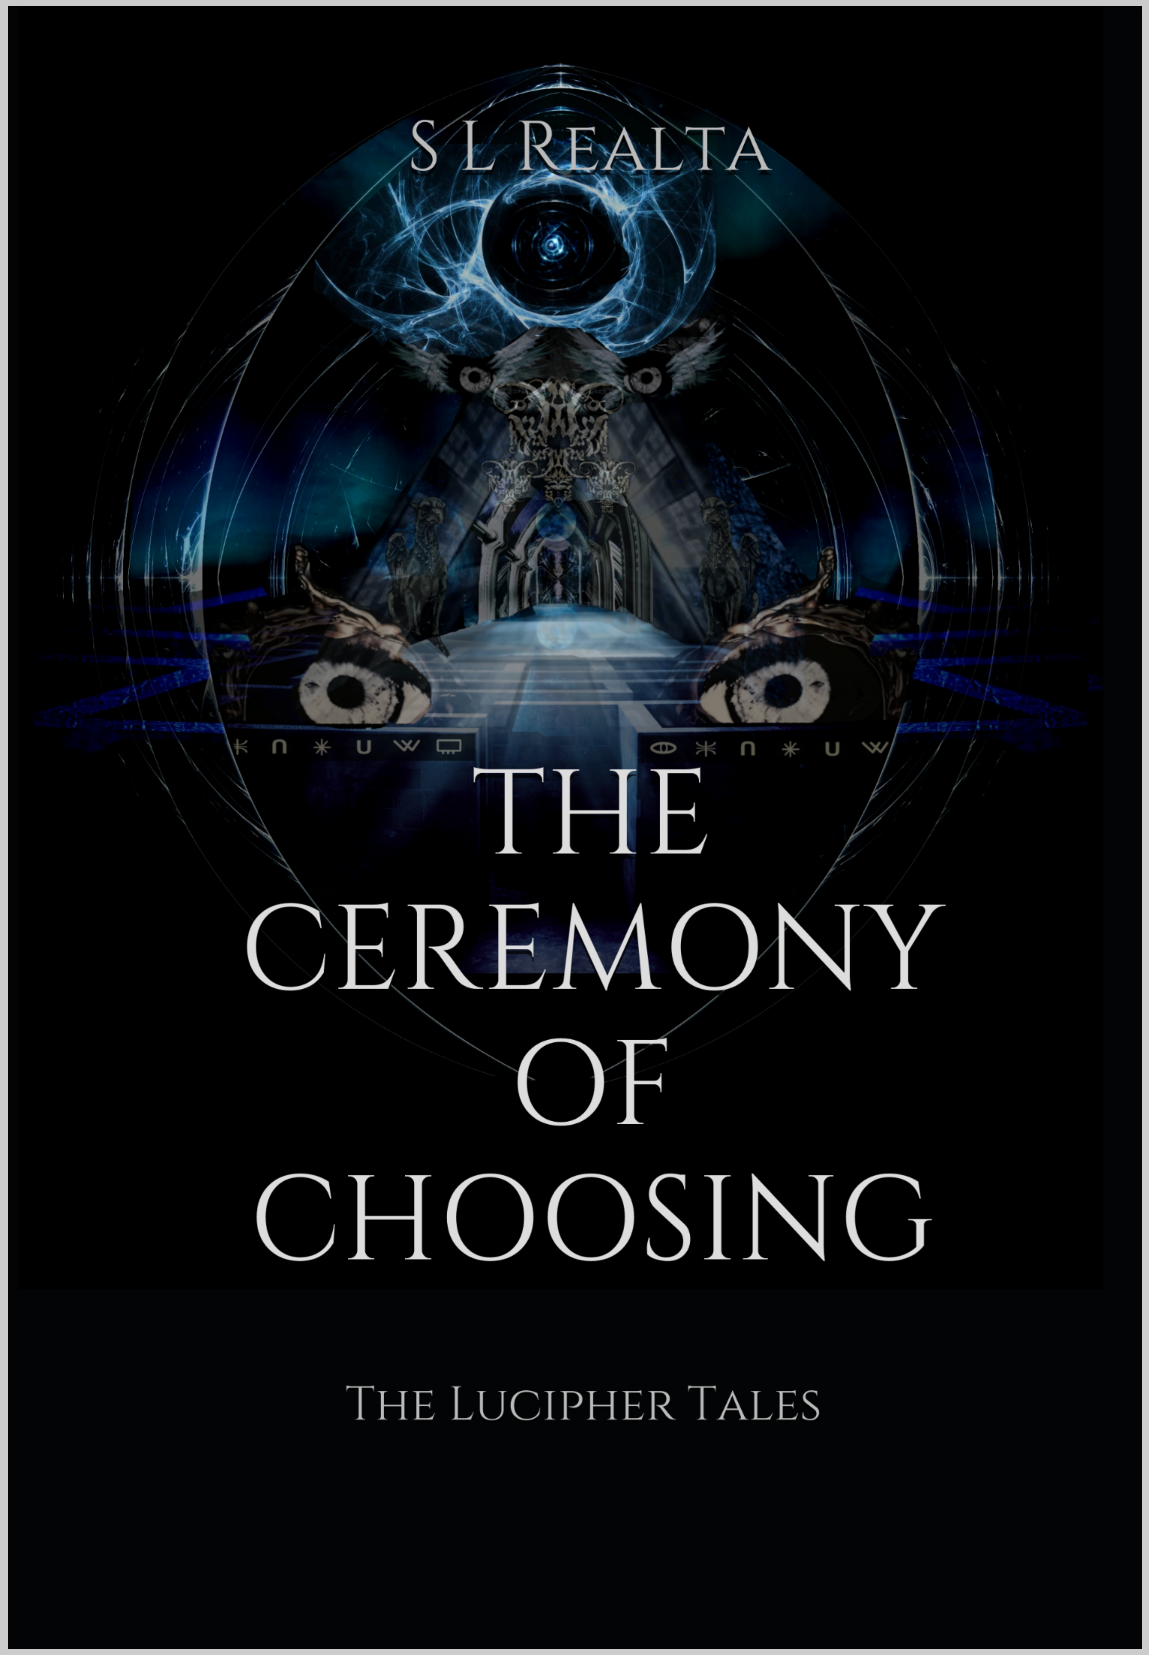 CEREMONY OF CHOOSING COVER 2020 SILVER WEBSIZE (1)